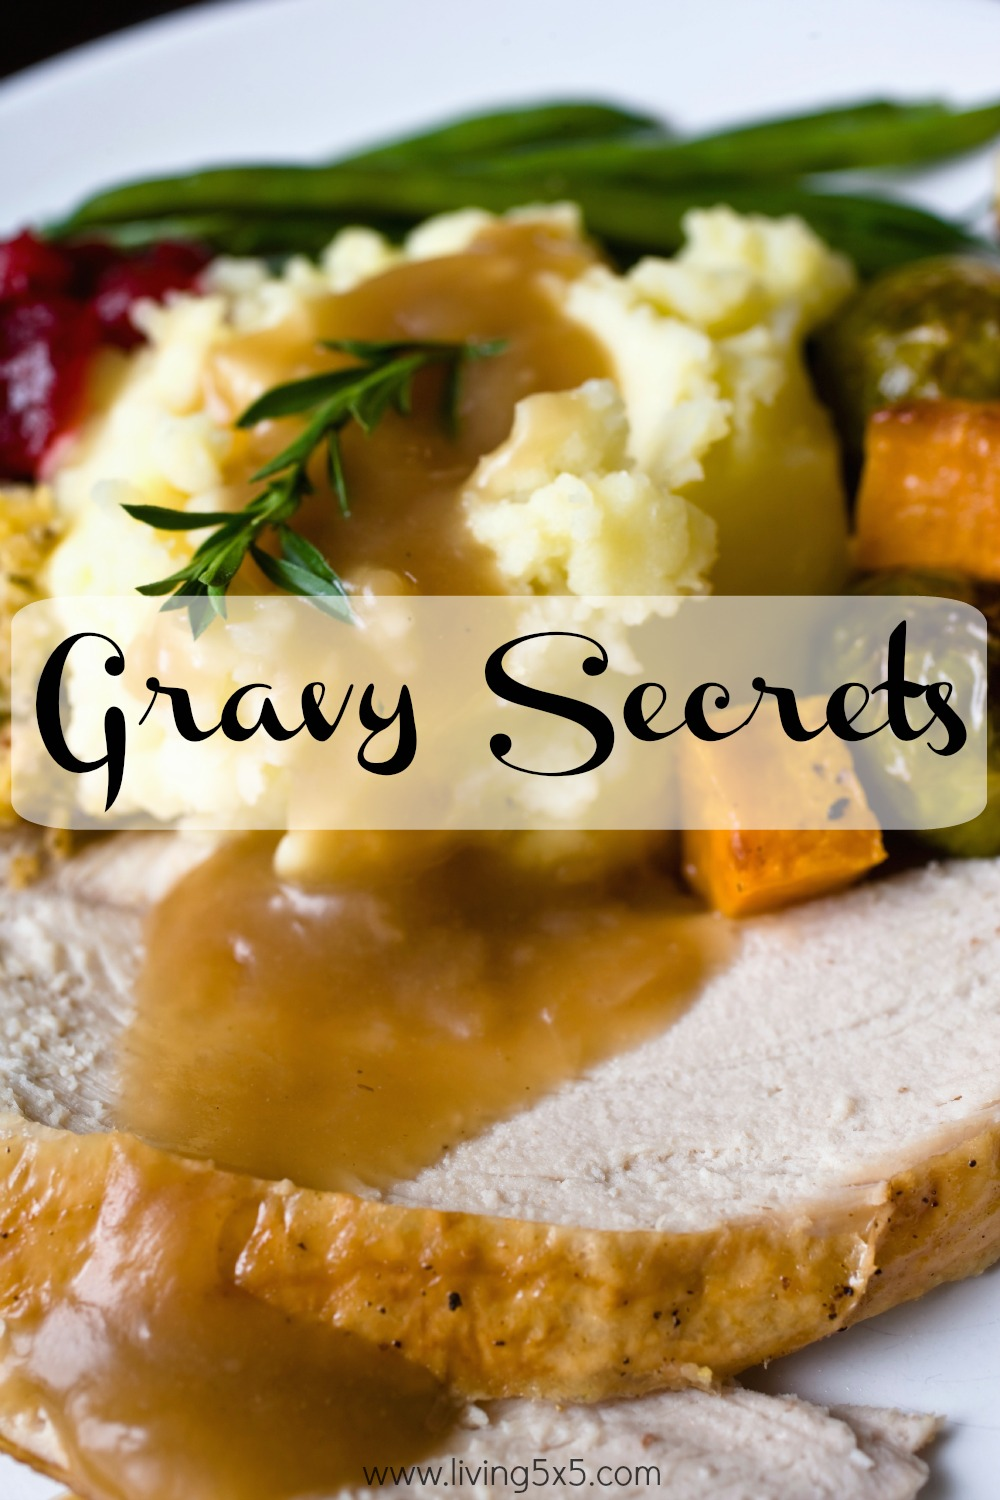 Make your own homemade gravy with my Gravy Secrets!